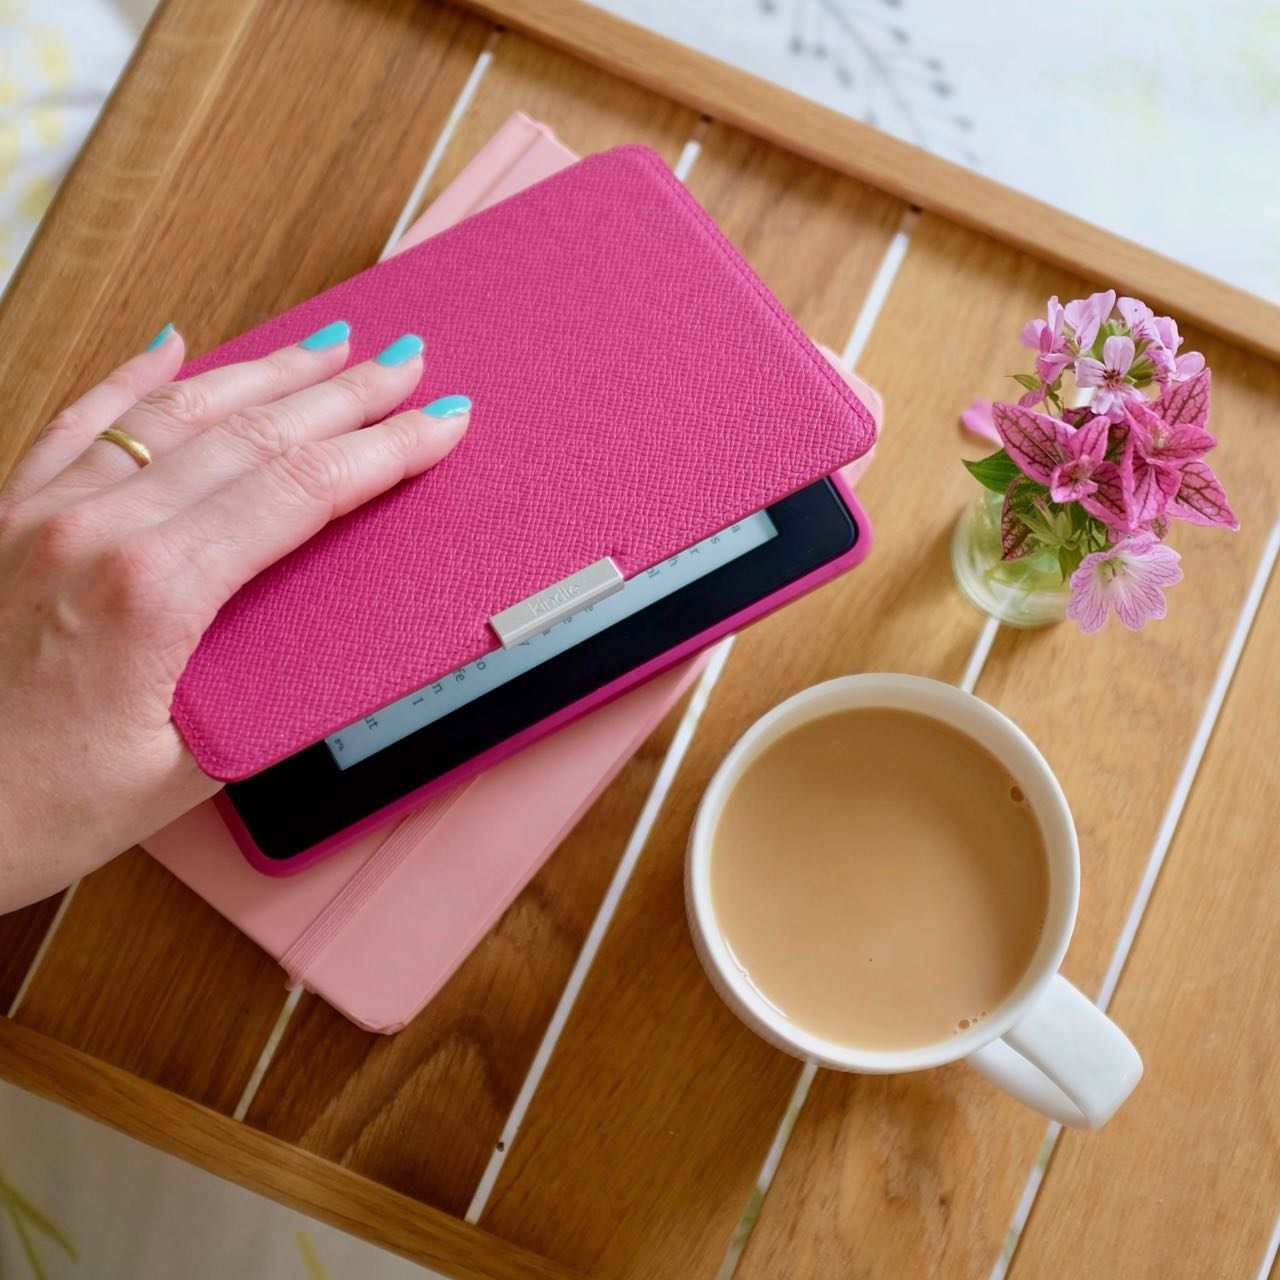 Kindle paper white with pink case